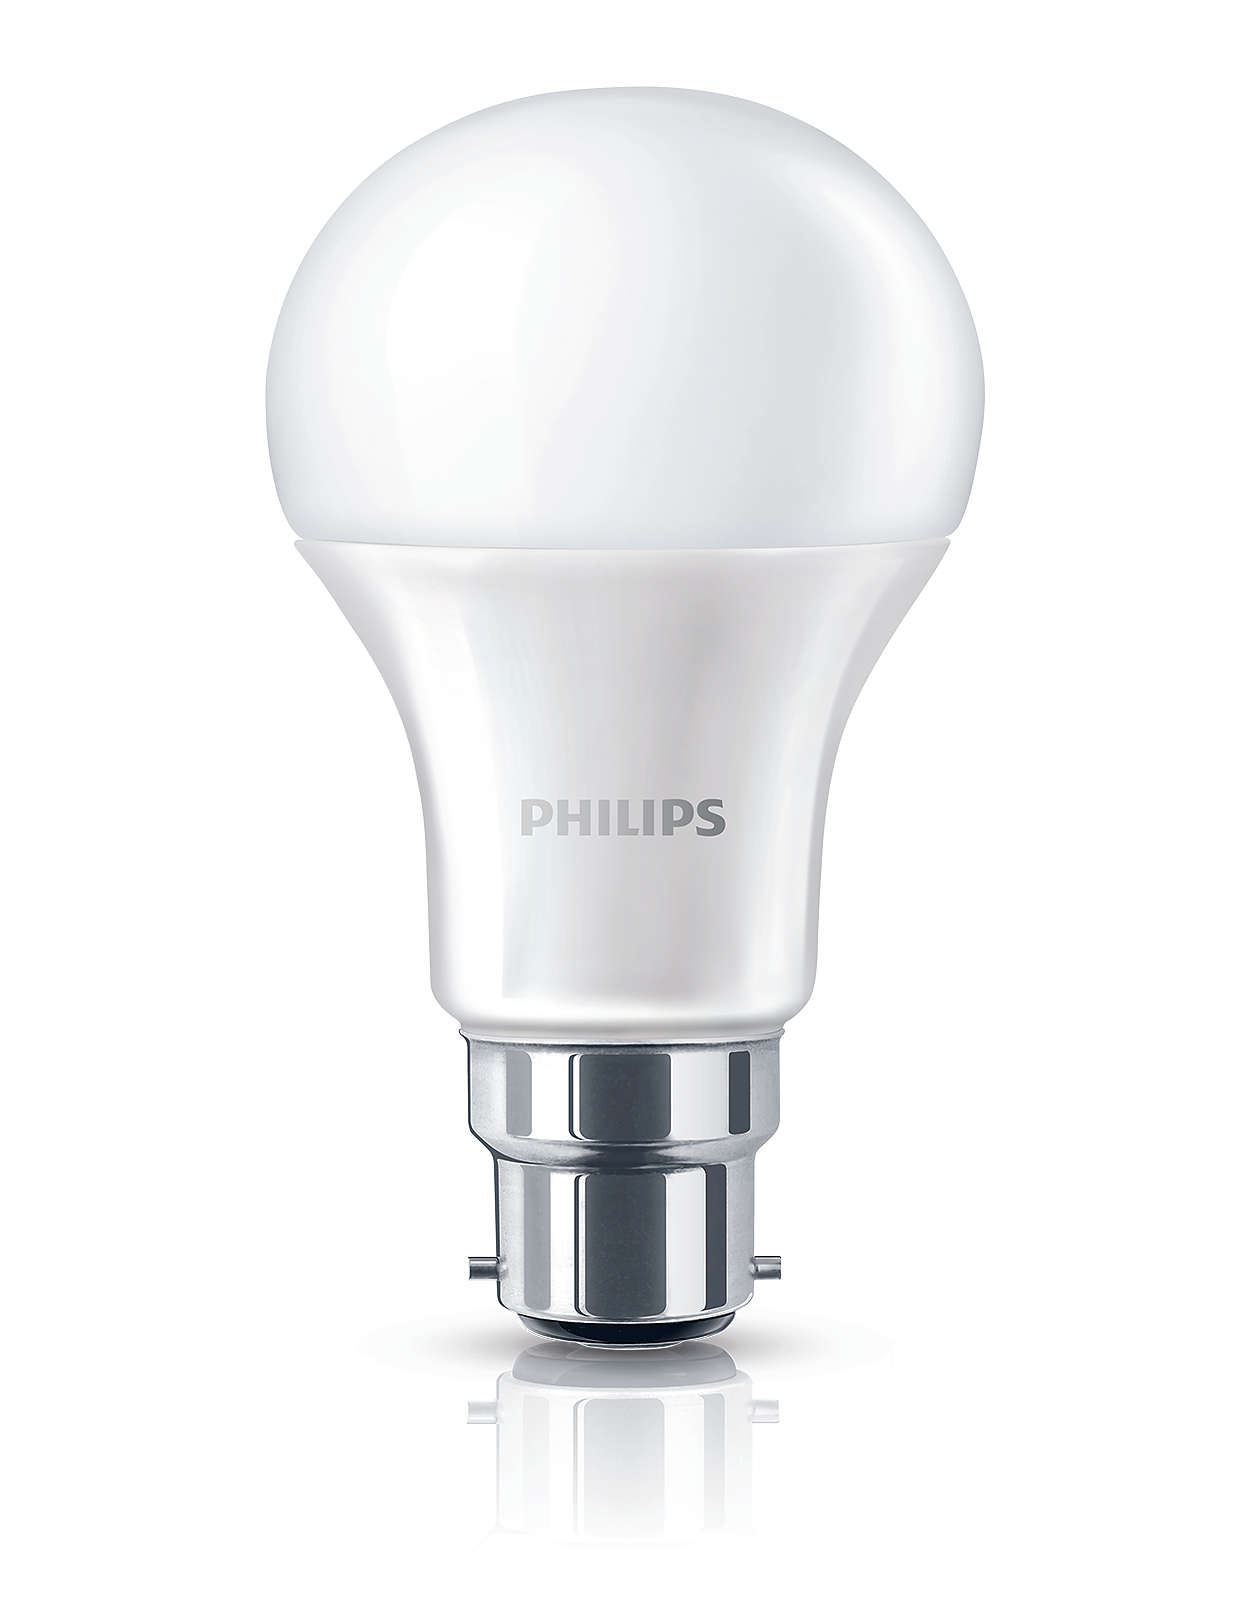 Led bulb 8718696482124 philips download image parisarafo Gallery